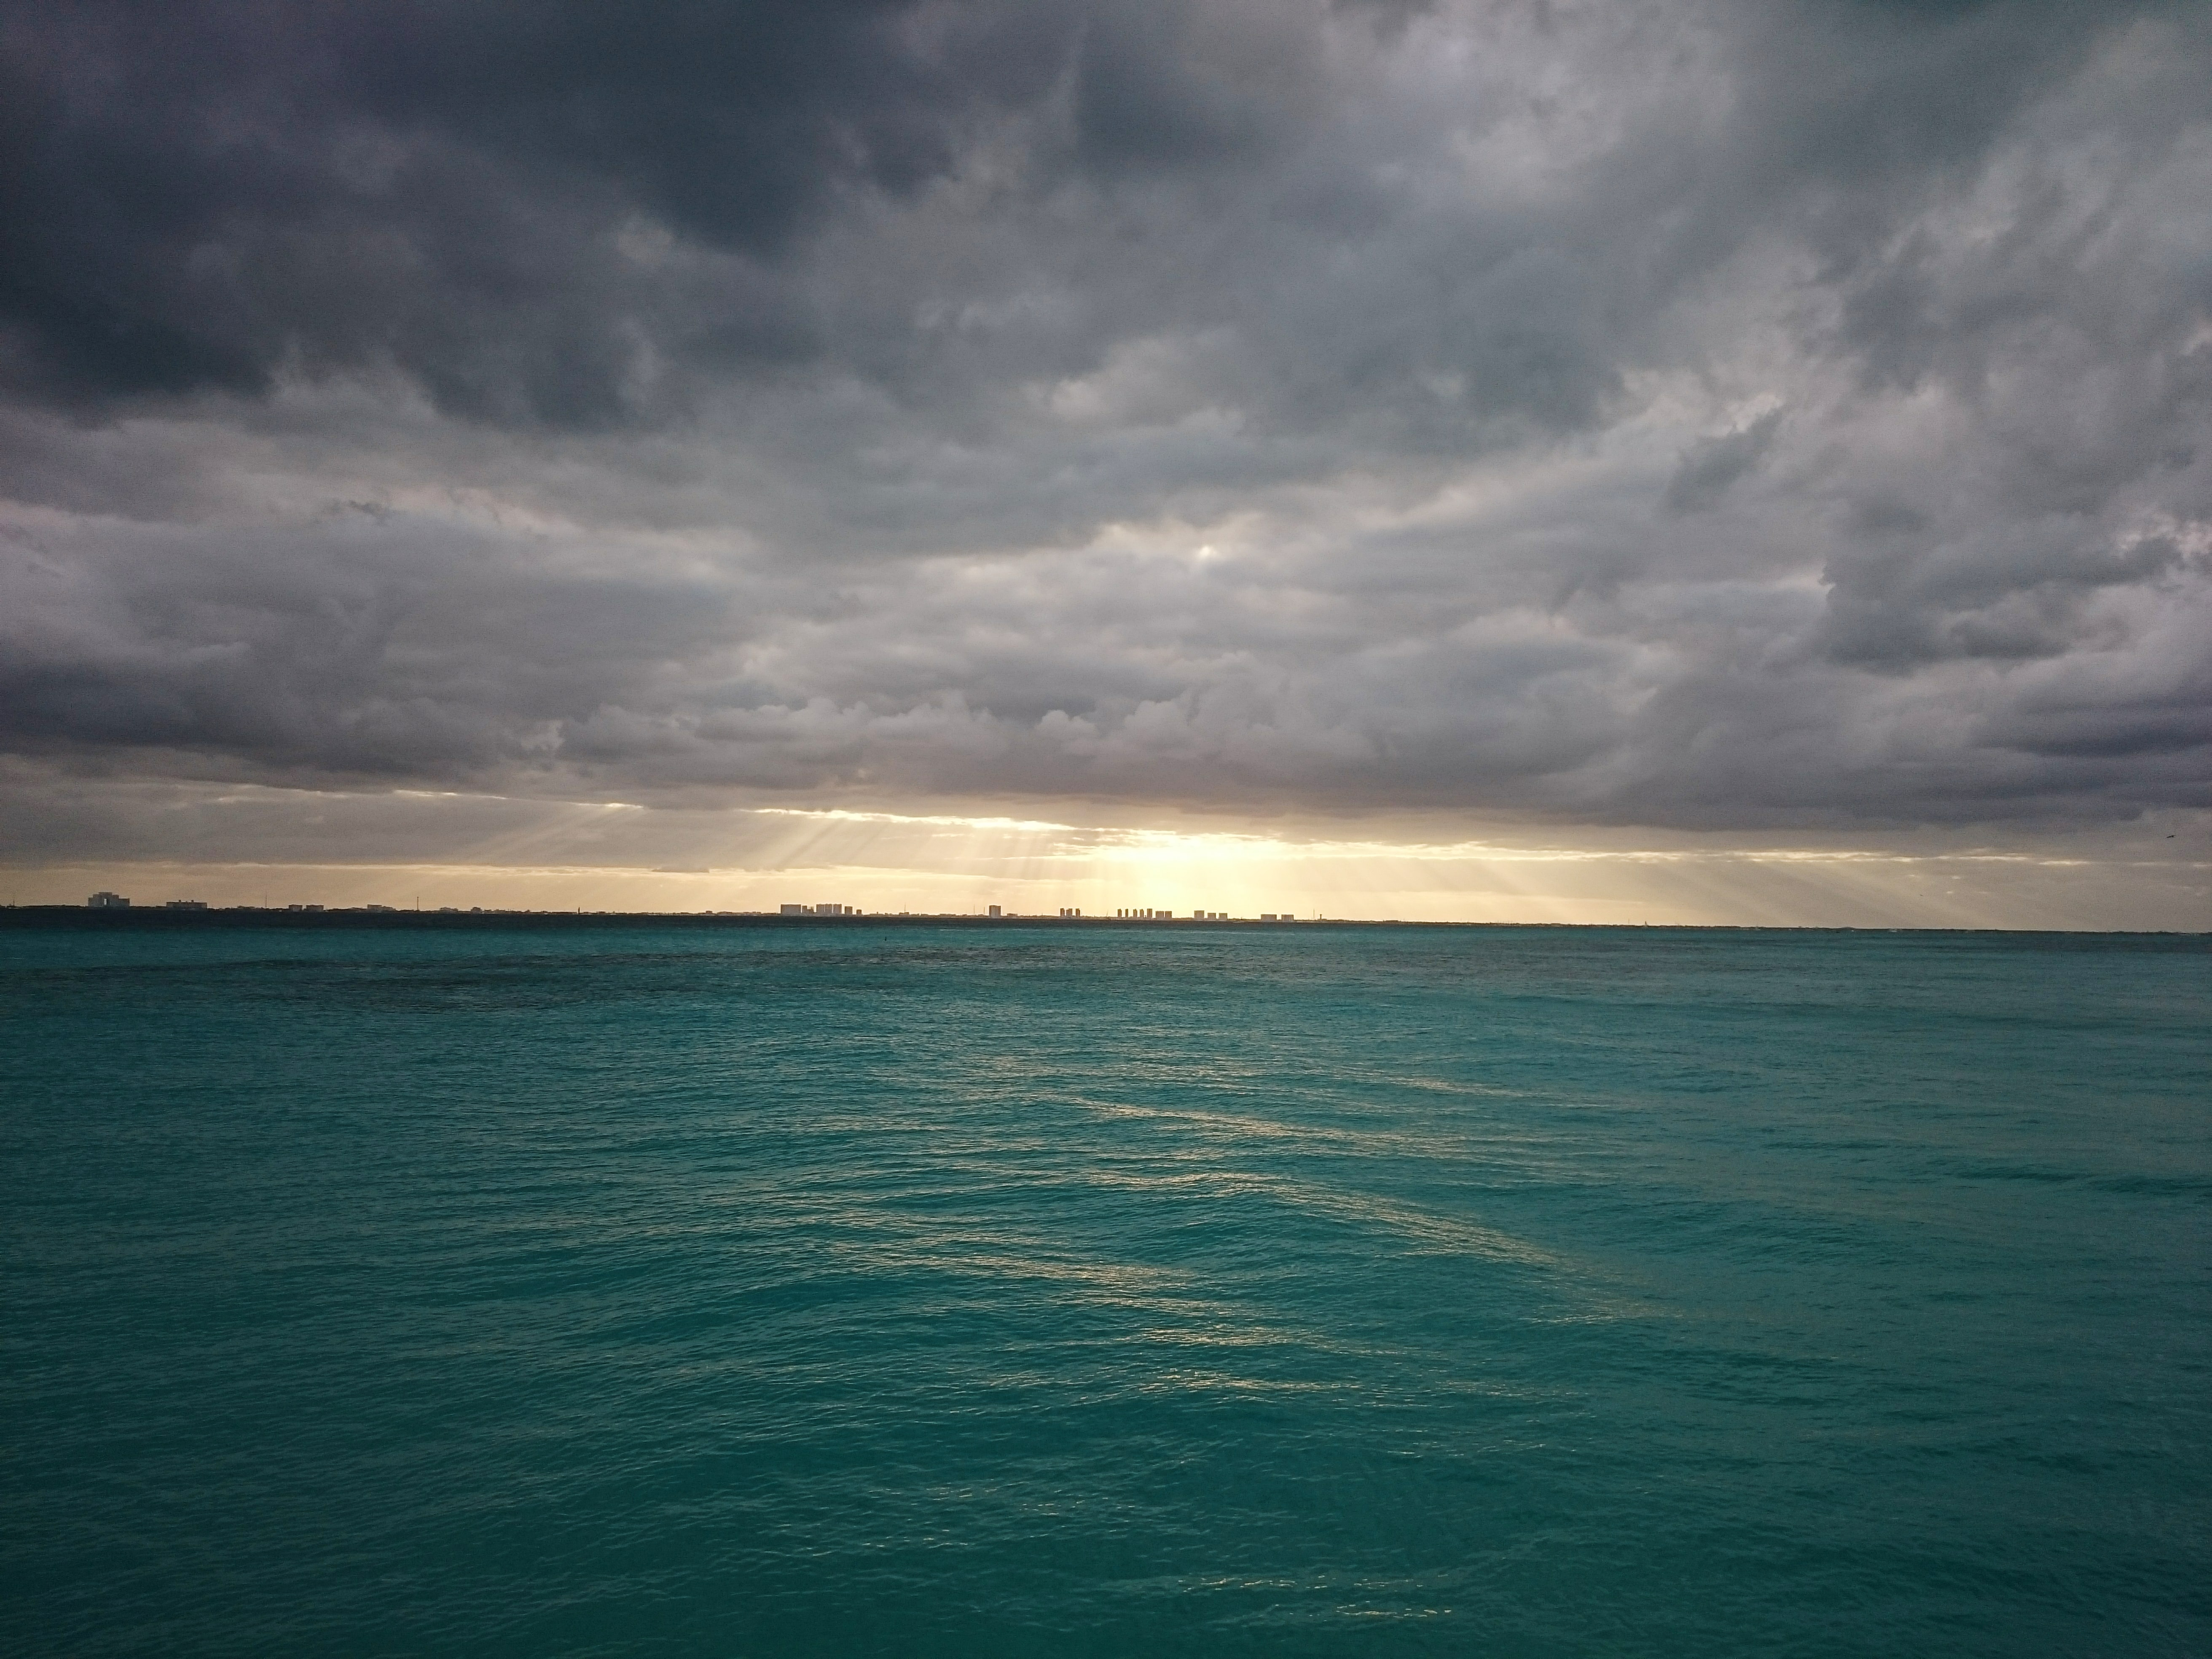 A turquoise sea with a city skyline on the horizon on a cloudy day